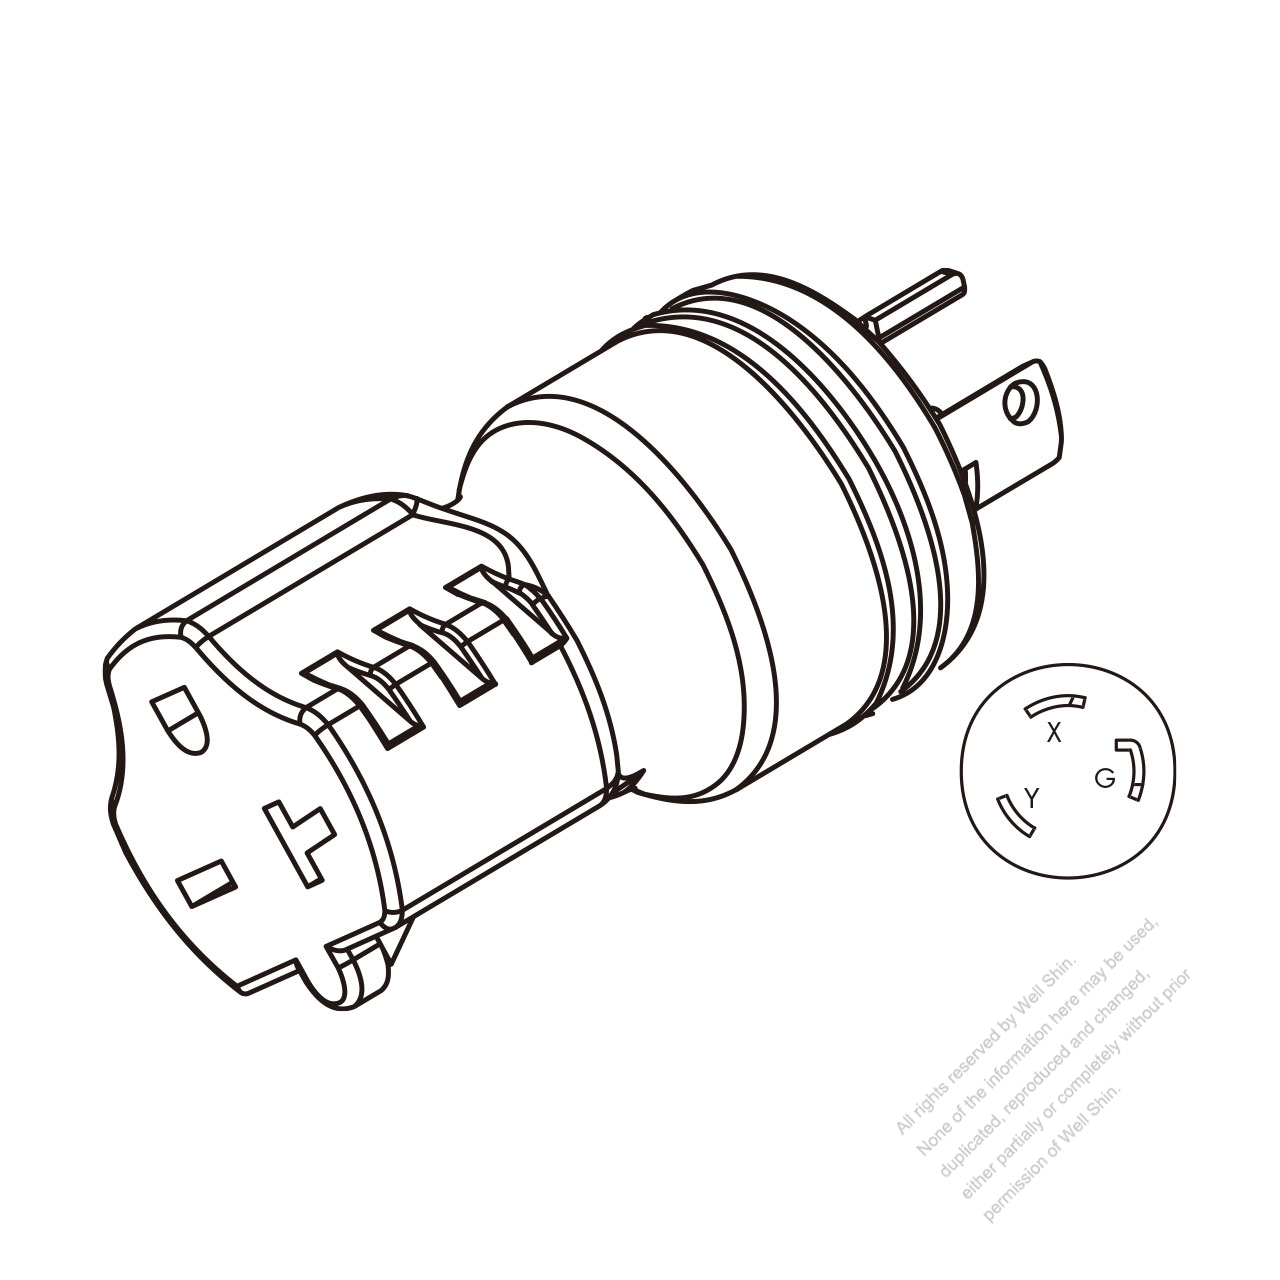 240 Volt Plug Wiring Diagram in addition 4 Prong Twist Lock Outlet Wiring Diagram likewise Automotive Infographics together with Gm   Gauge Wiring furthermore Wiring Diagram For 30   Rv Plug. on 50 amp rv outlet wiring